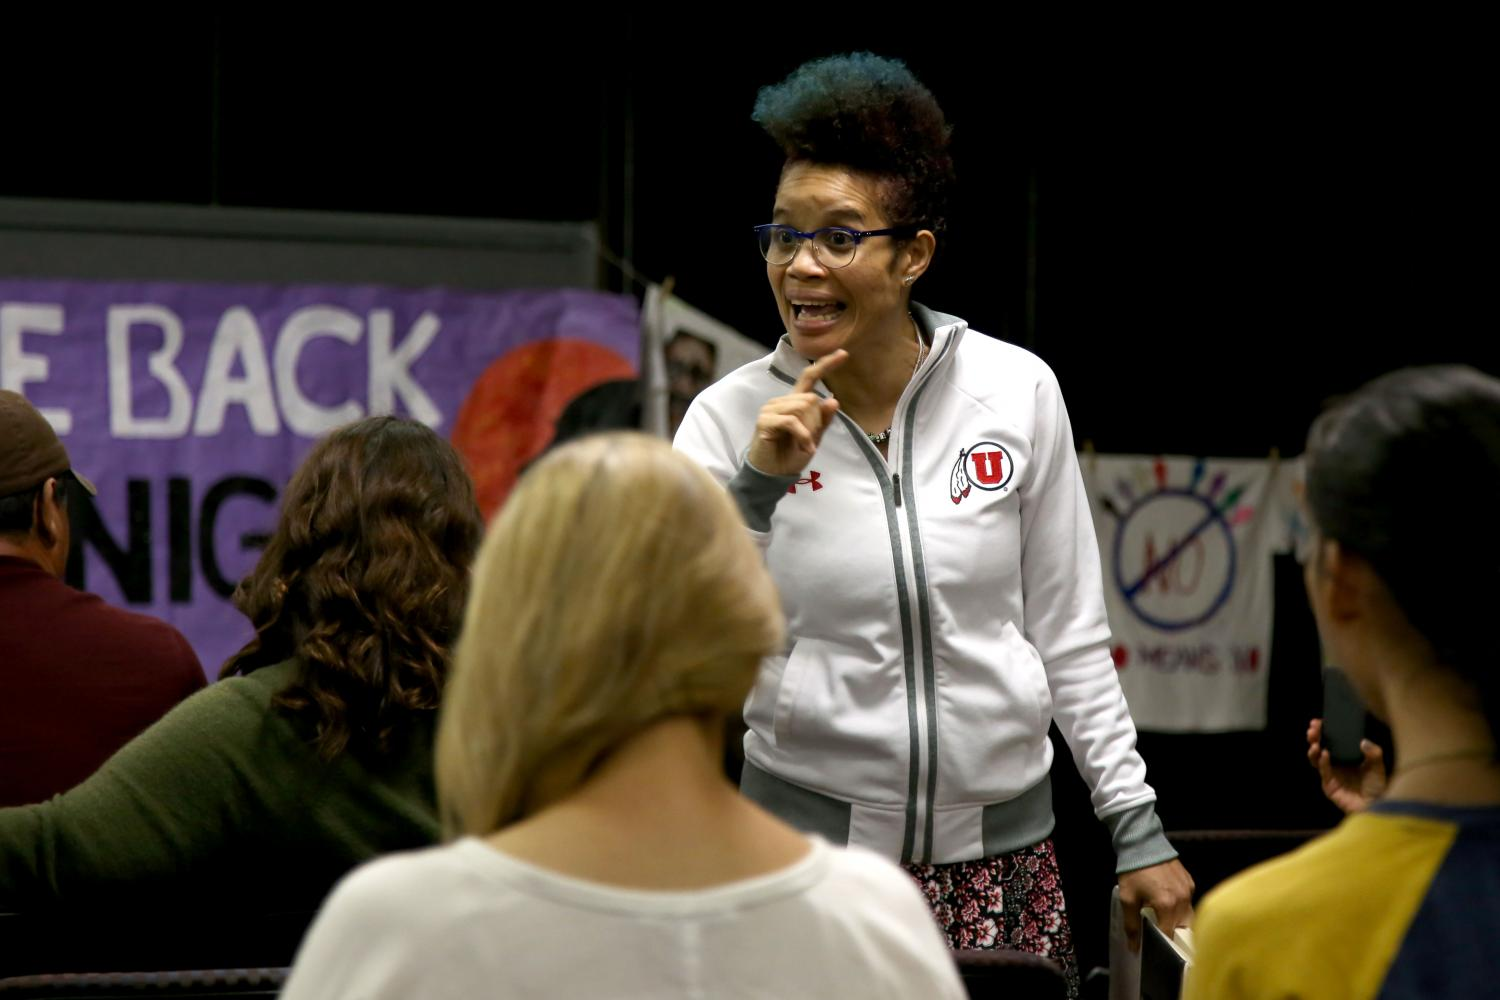 Students+speak+out+at+Take+Back+the+Night